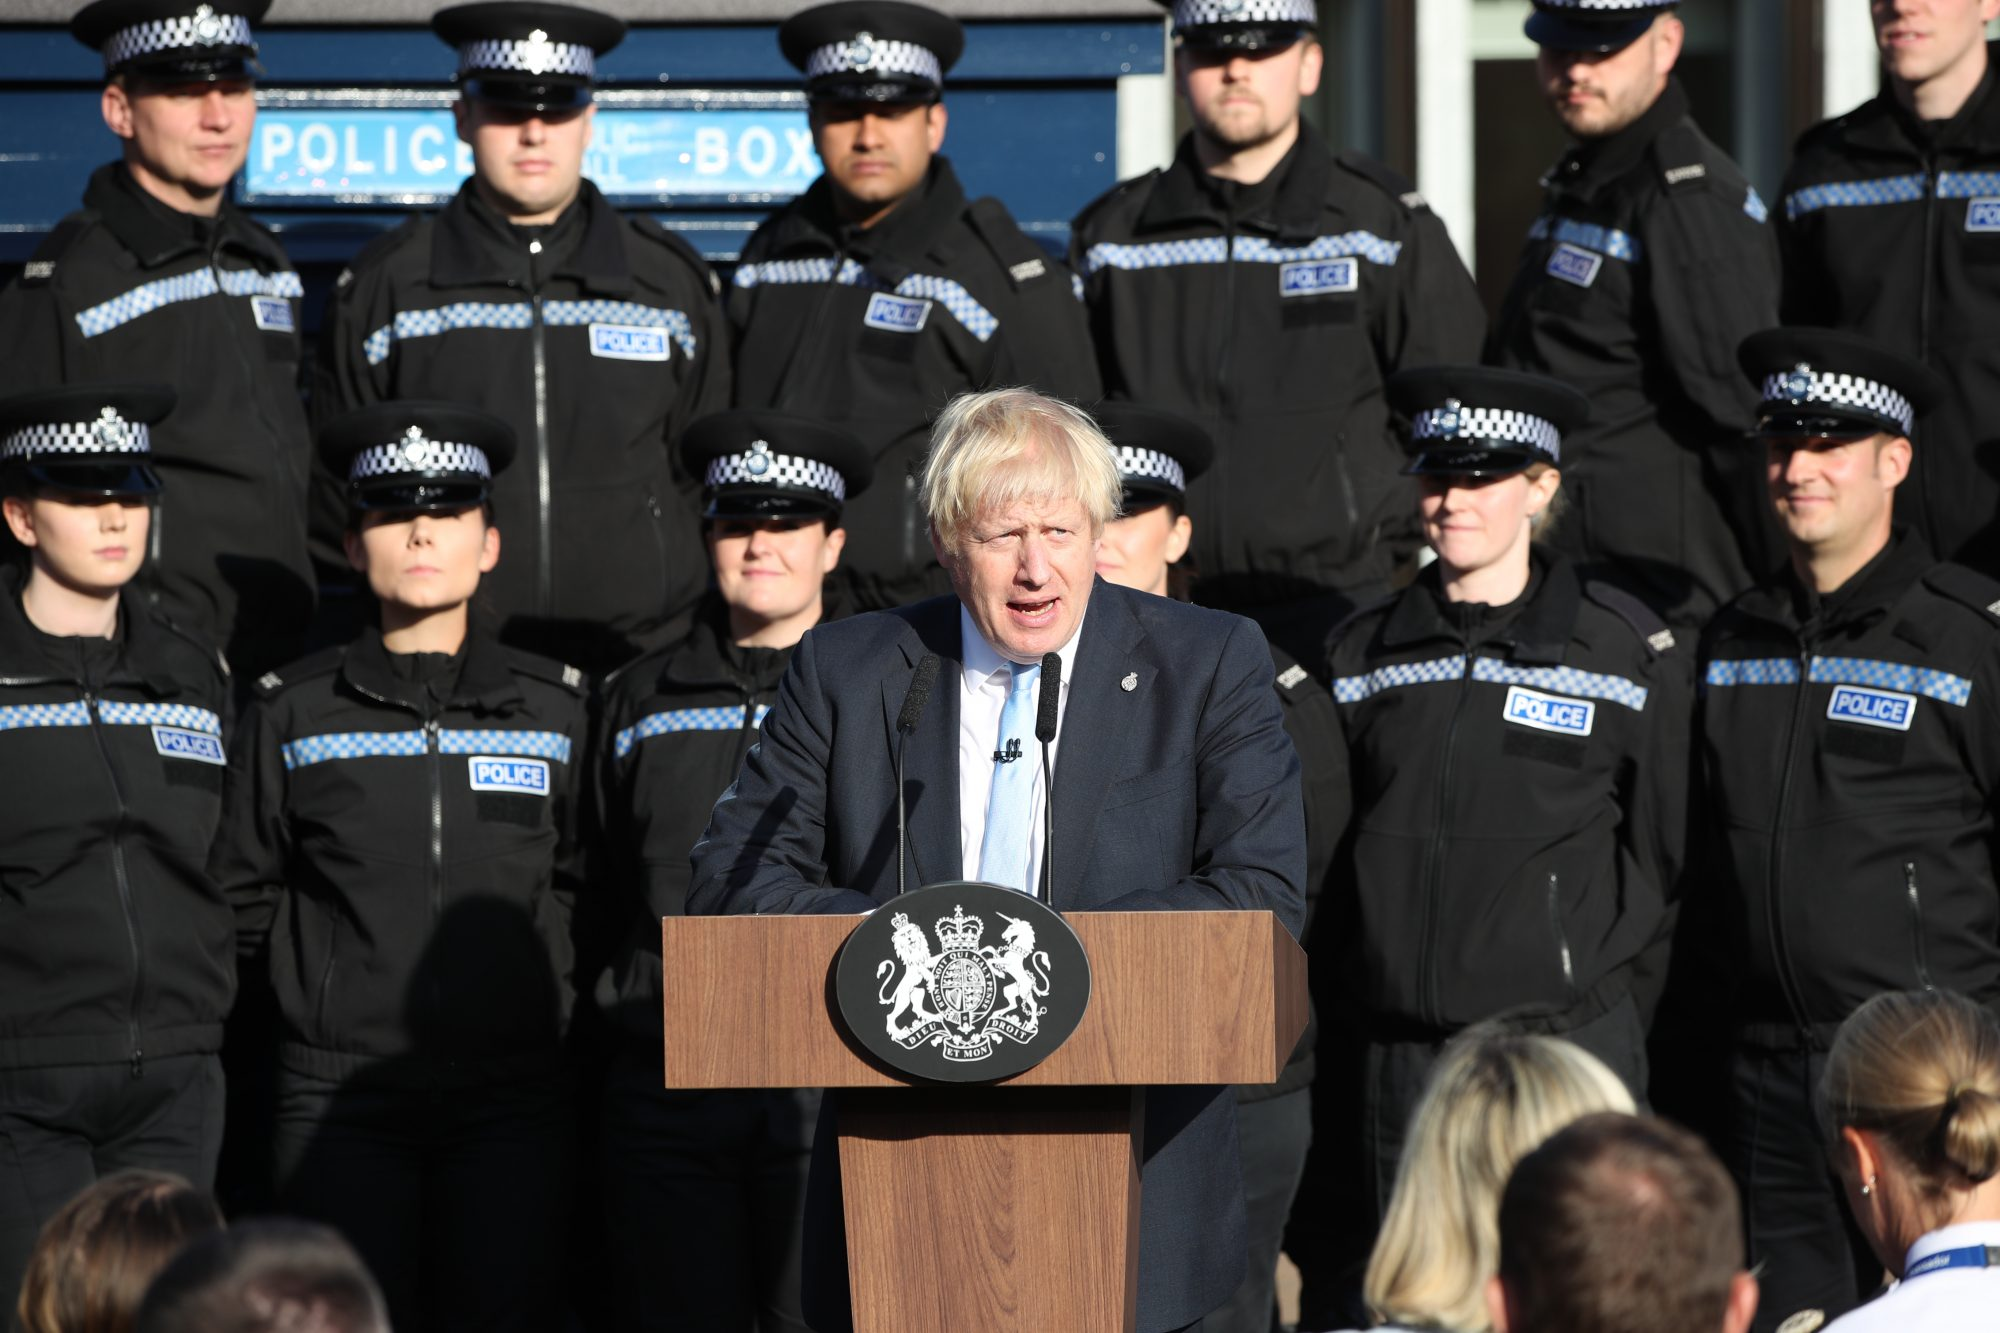 Chief constable 'disappointed' officers used as 'backdrop' by Johnson